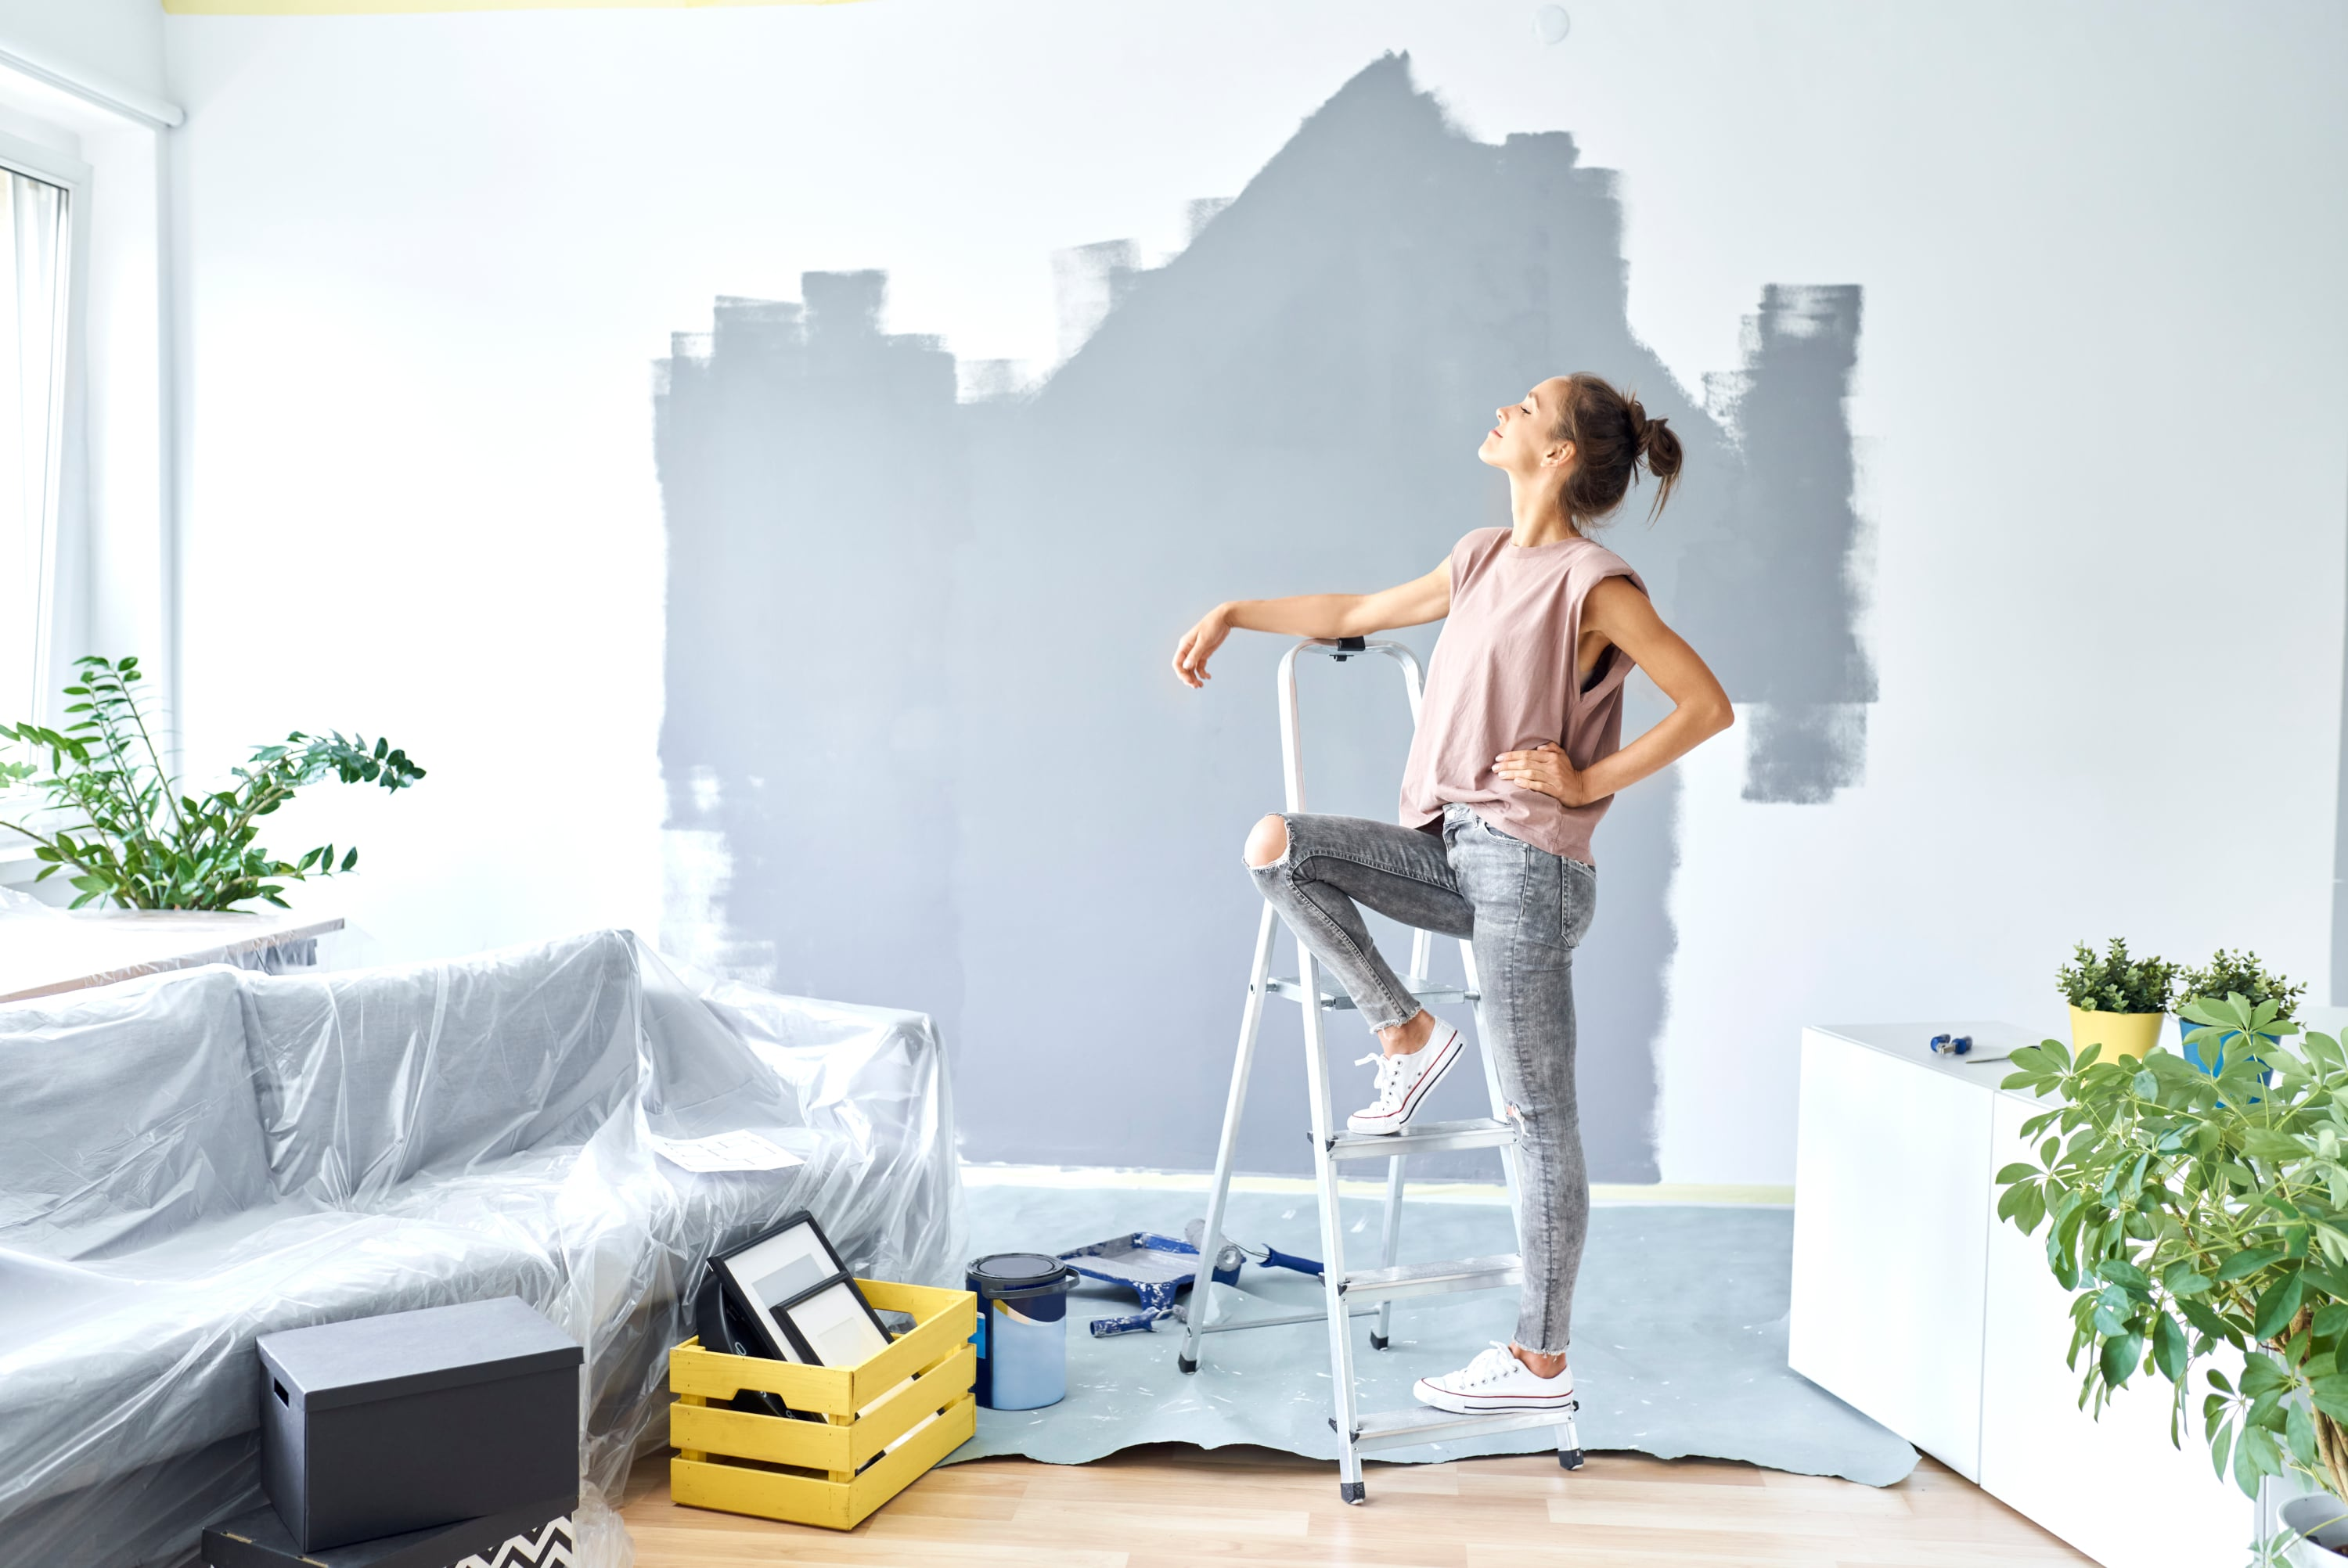 10 Home Improvement & Remodeling Ideas that Increase Home Value